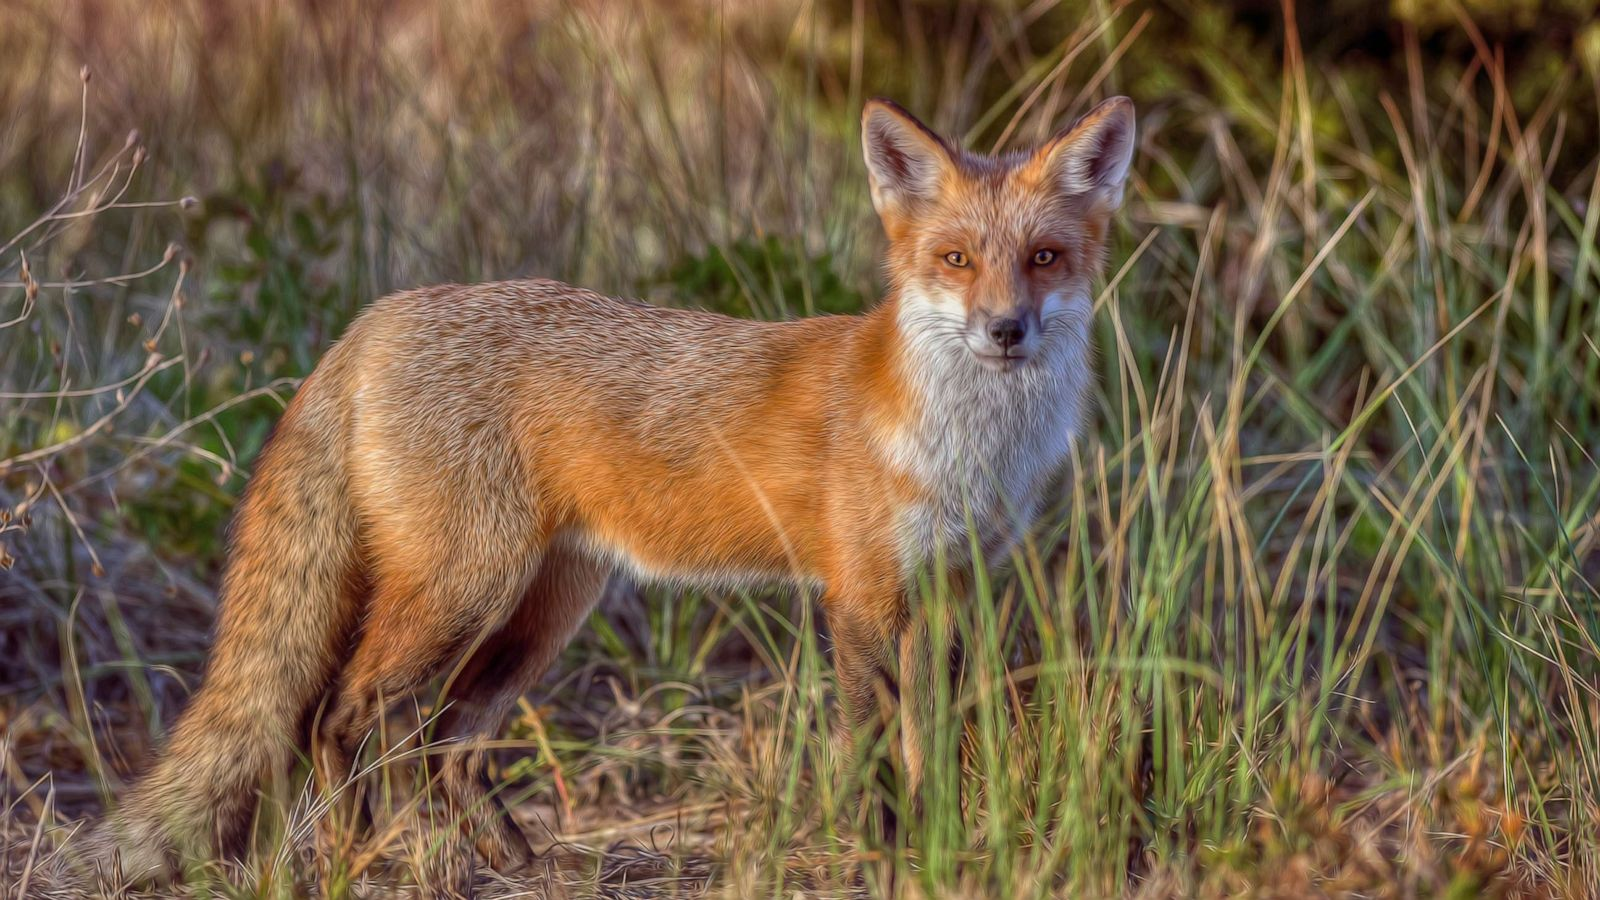 Fox In New Jersey That Bit 5 Sent 3 To Hospital Is Killed Police Abc News